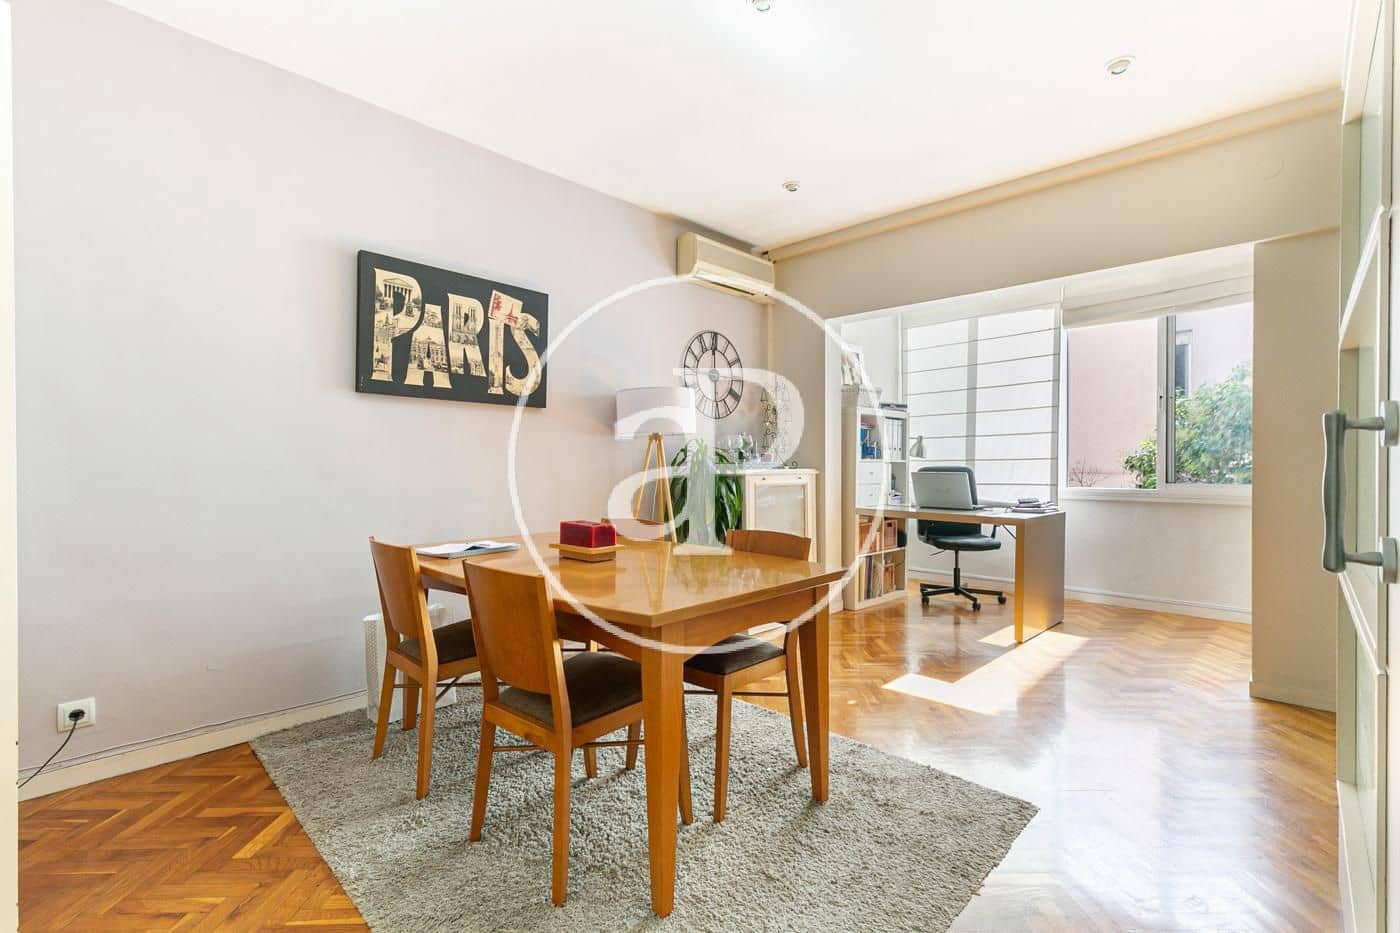 3 bedroom Flat for sale in Barcelona city with garage - € 540,000 (Ref: 6326403)